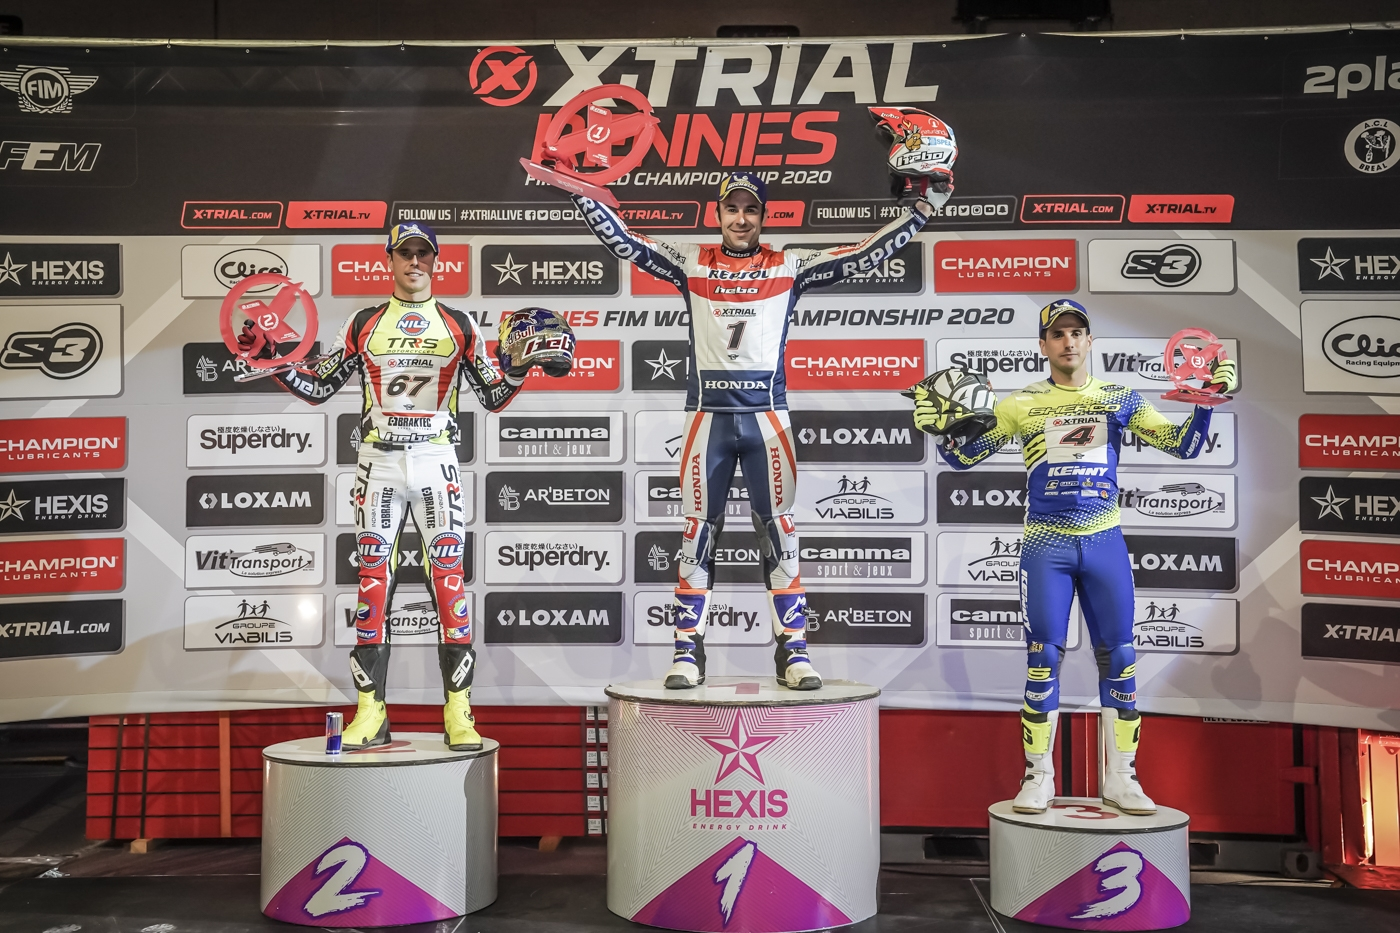 Bou remains leader with victory at X-Trial Rennes